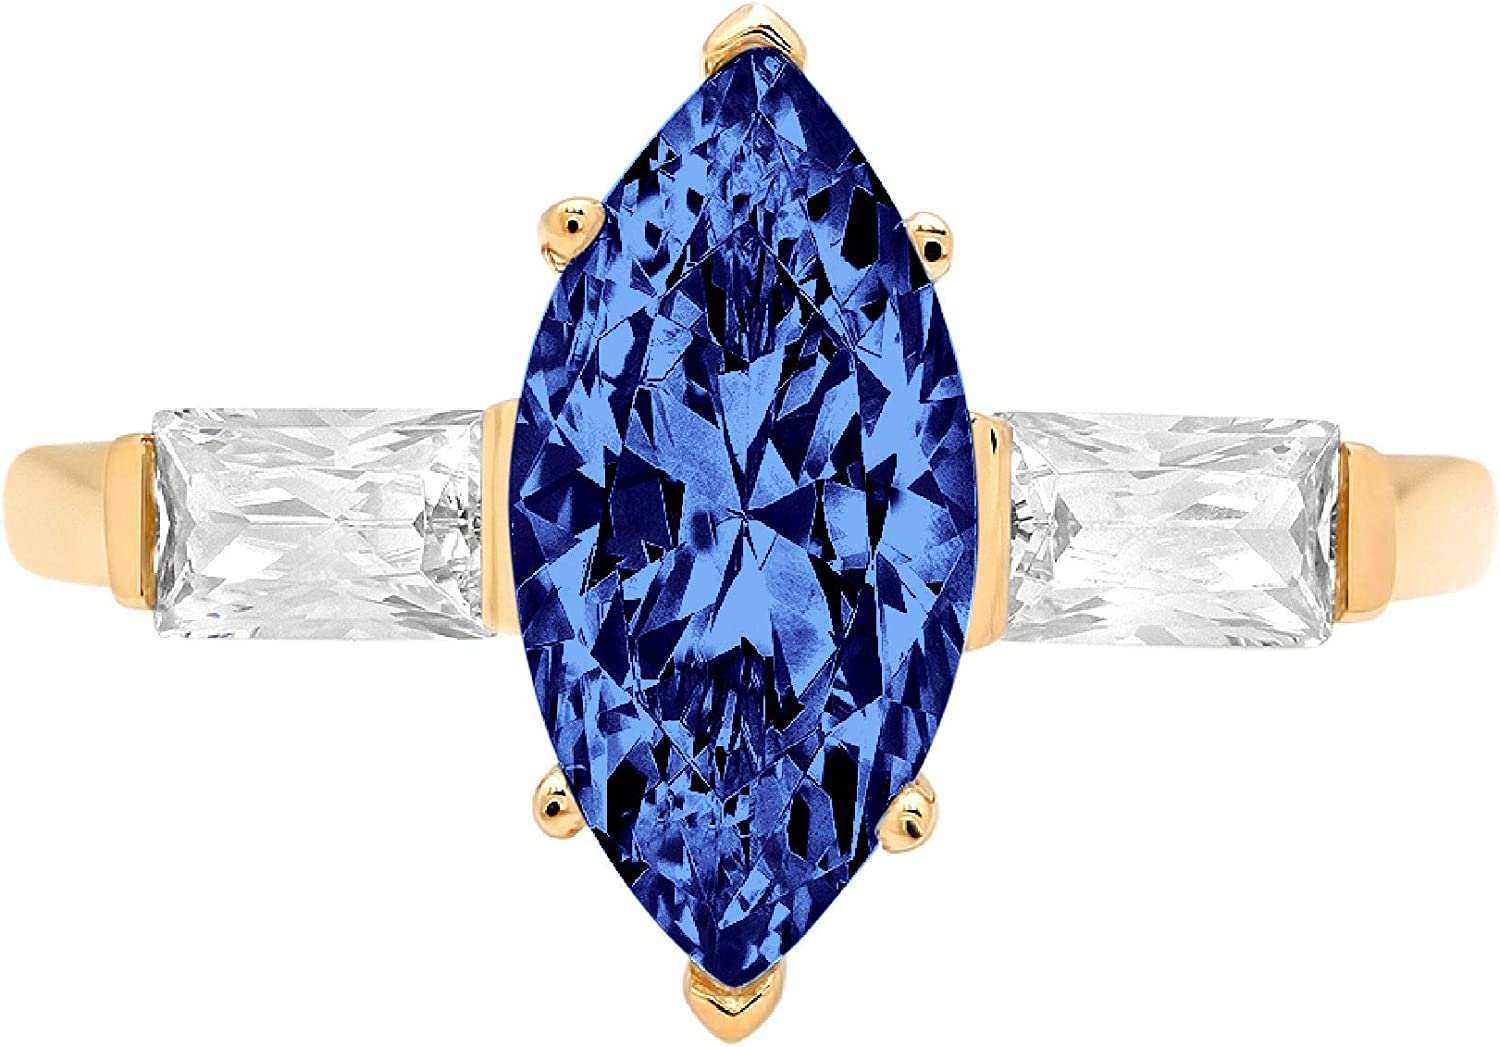 1.95 ct Marquise Baguette cut 3 stone Solitaire with Accent Flawless Ideal VVS1 Simulated Tanzanite Ideal Engagement Promise Statement Anniversary Bridal Wedding Designer Ring 14k Yellow Gold